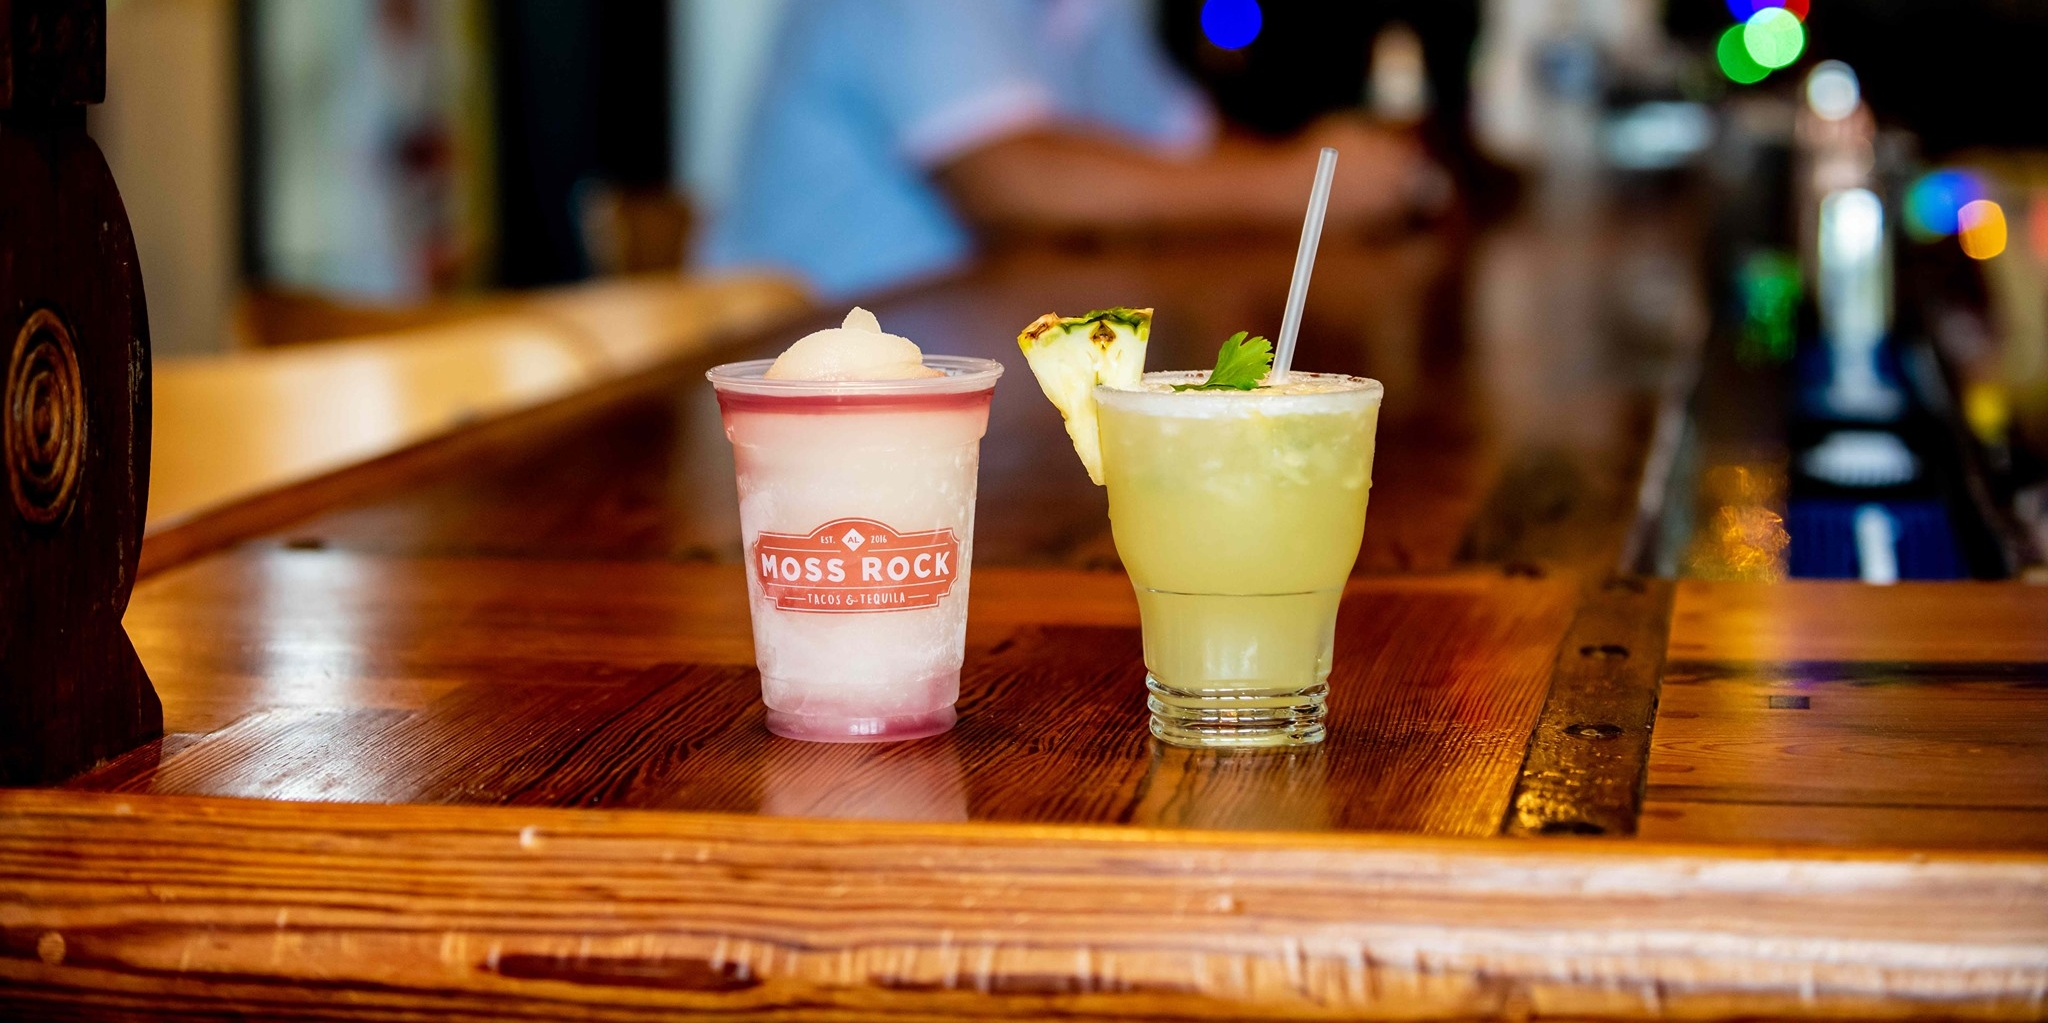 It's National Tequila Day! Check out our guide for 8 spots to get your drink on in Birmingham, including specials